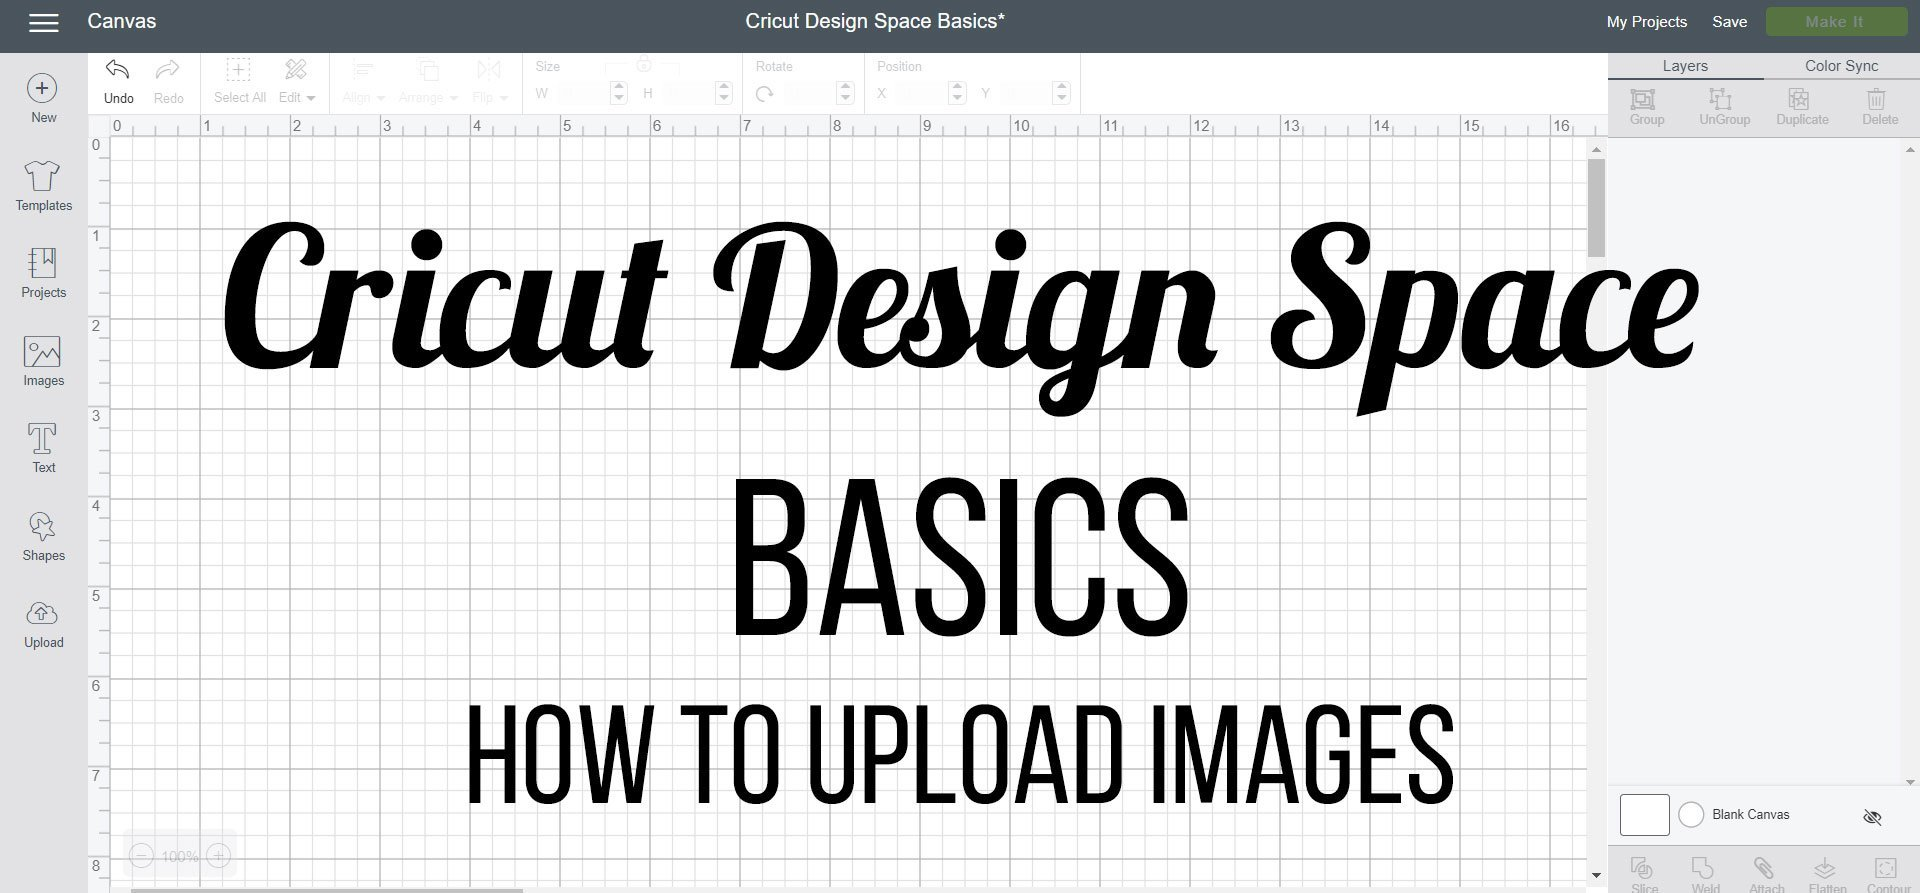 How to Upload Images in Cricut Design Space